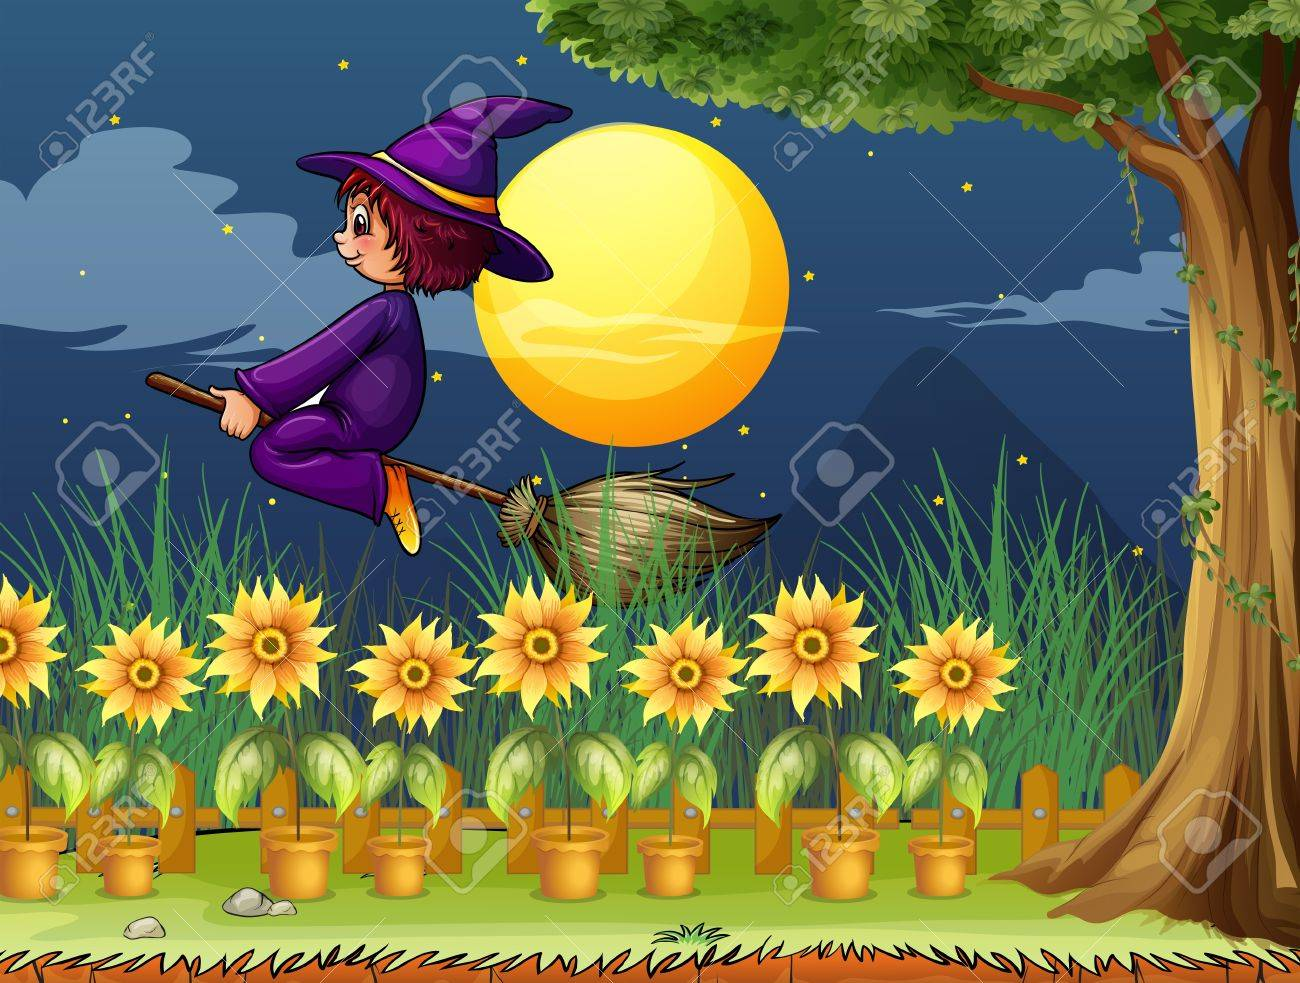 Illustration of a witch in the garden Stock Vector - 18158515